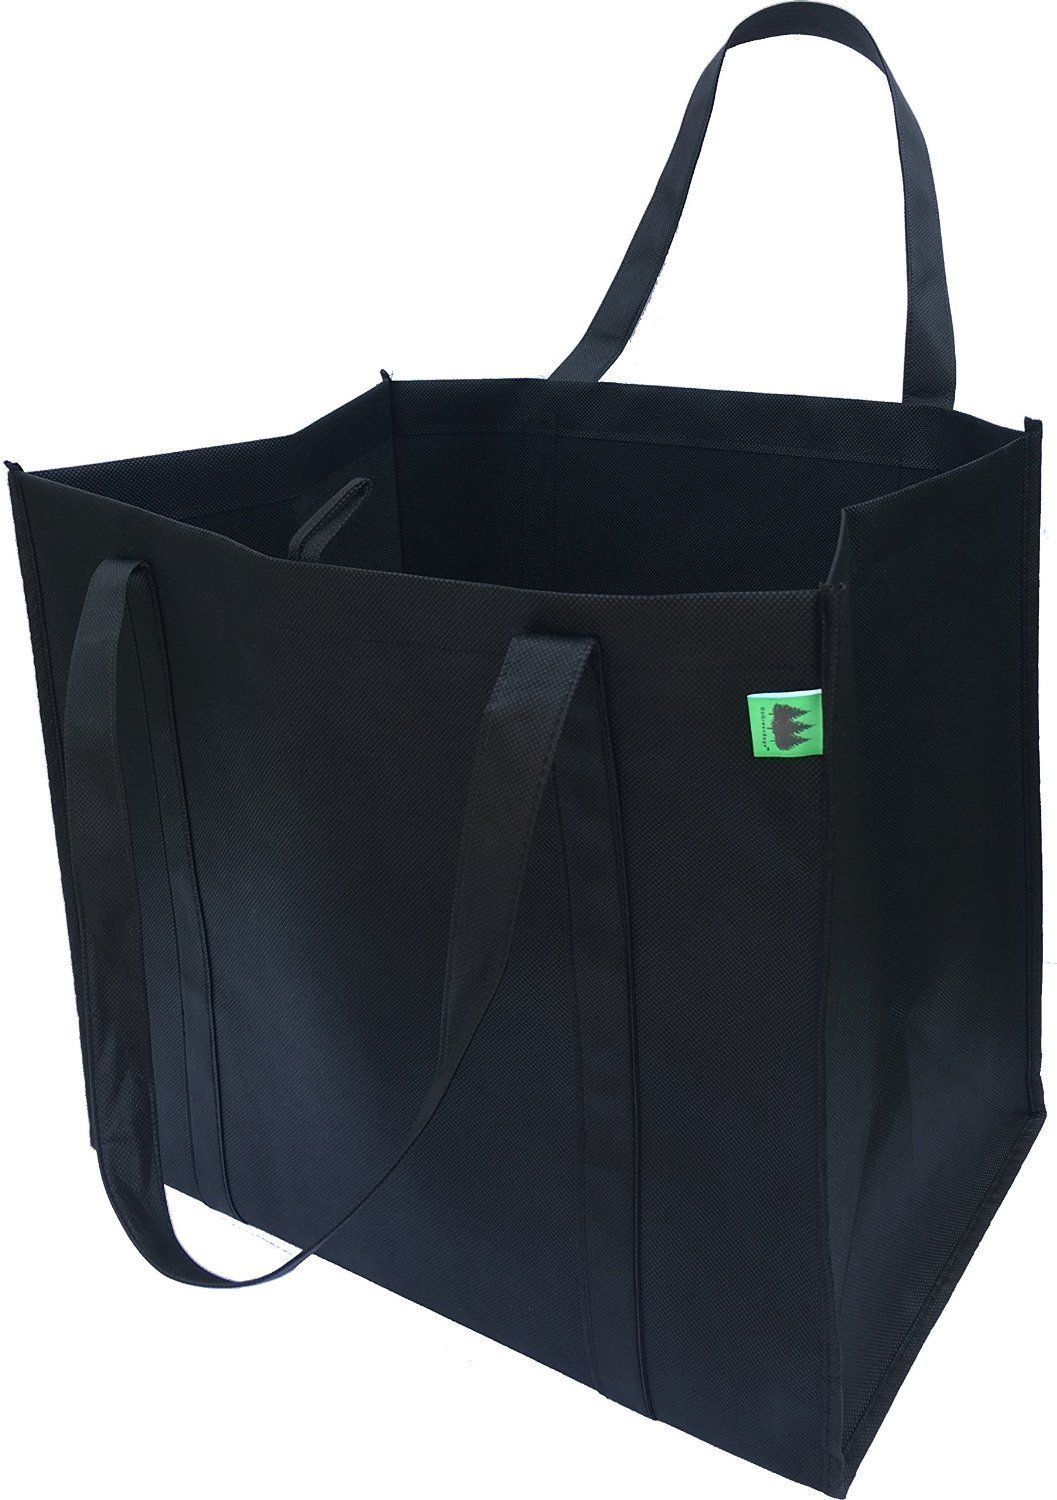 Reusable Grocery Bags (5 Pack, Black) - Hold 40+ lbs - Extra Large & Super Strong, Heavy Duty Shopping Bags - Grocery Tote Bag with Reinforced Handles & Thick Plastic Bottom for Strength